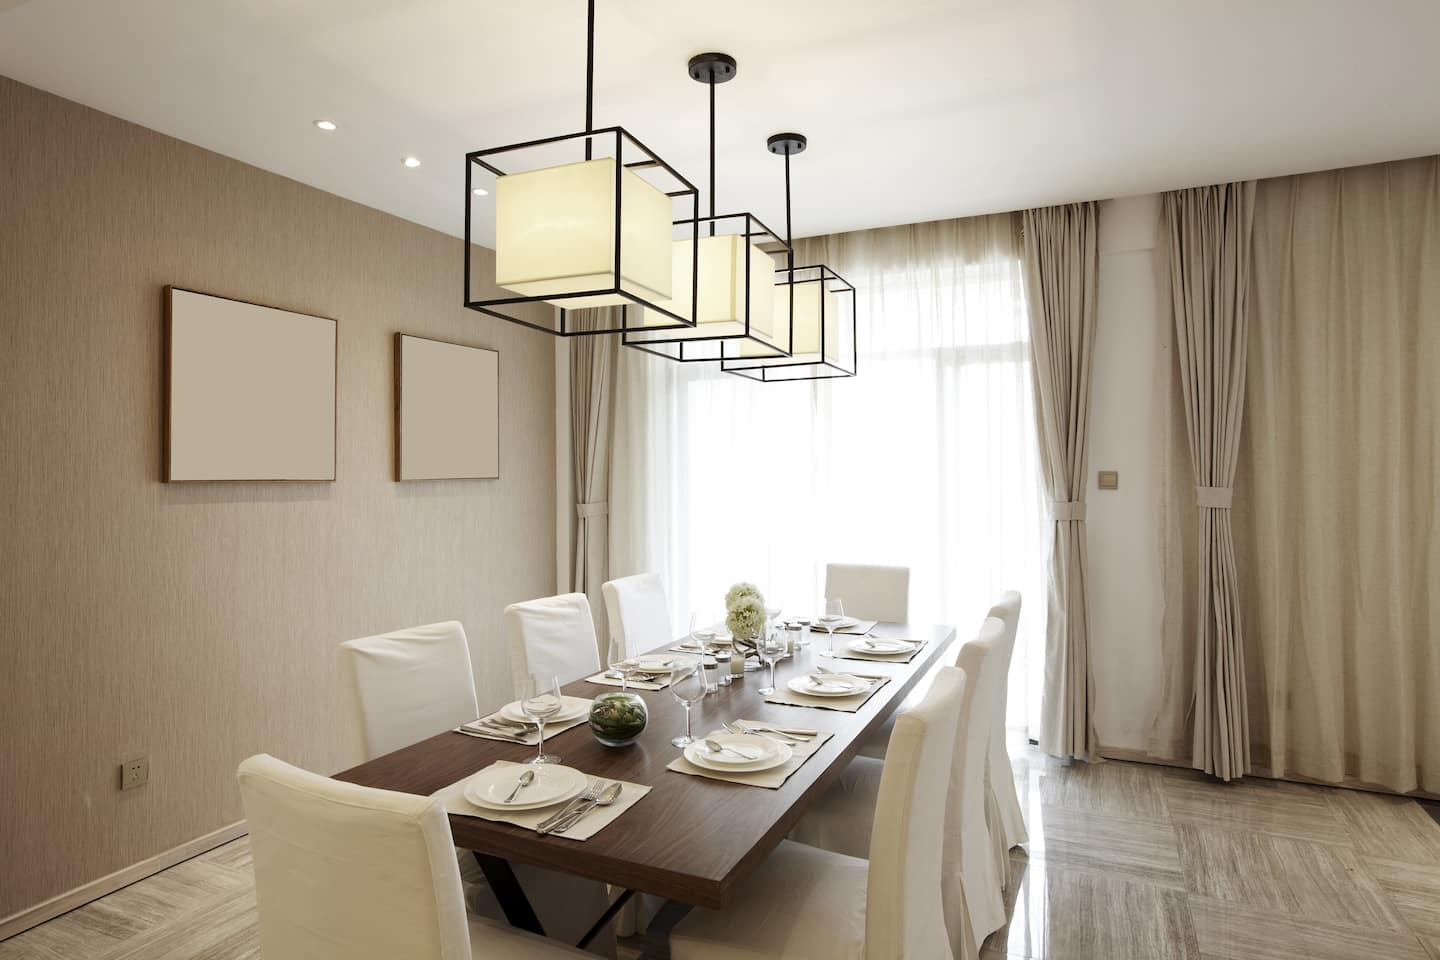 Beau Contemporary Formal Dining Room With Modern Elements, And Off White Drapes  Layered Over Sheer